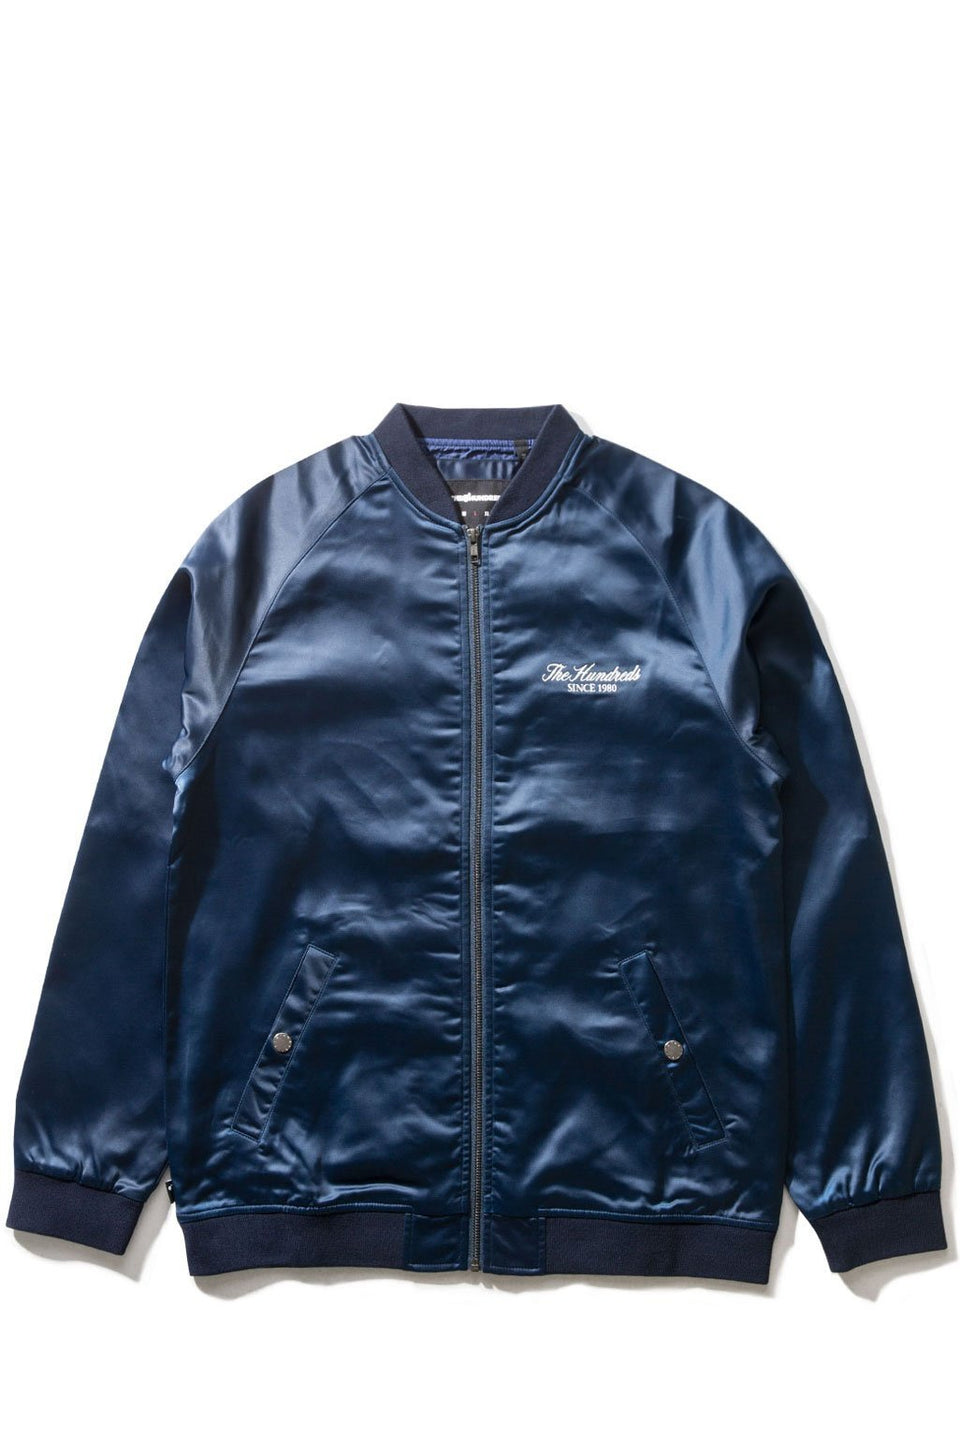 Glazer Jacket-TOPS-The Hundreds UK